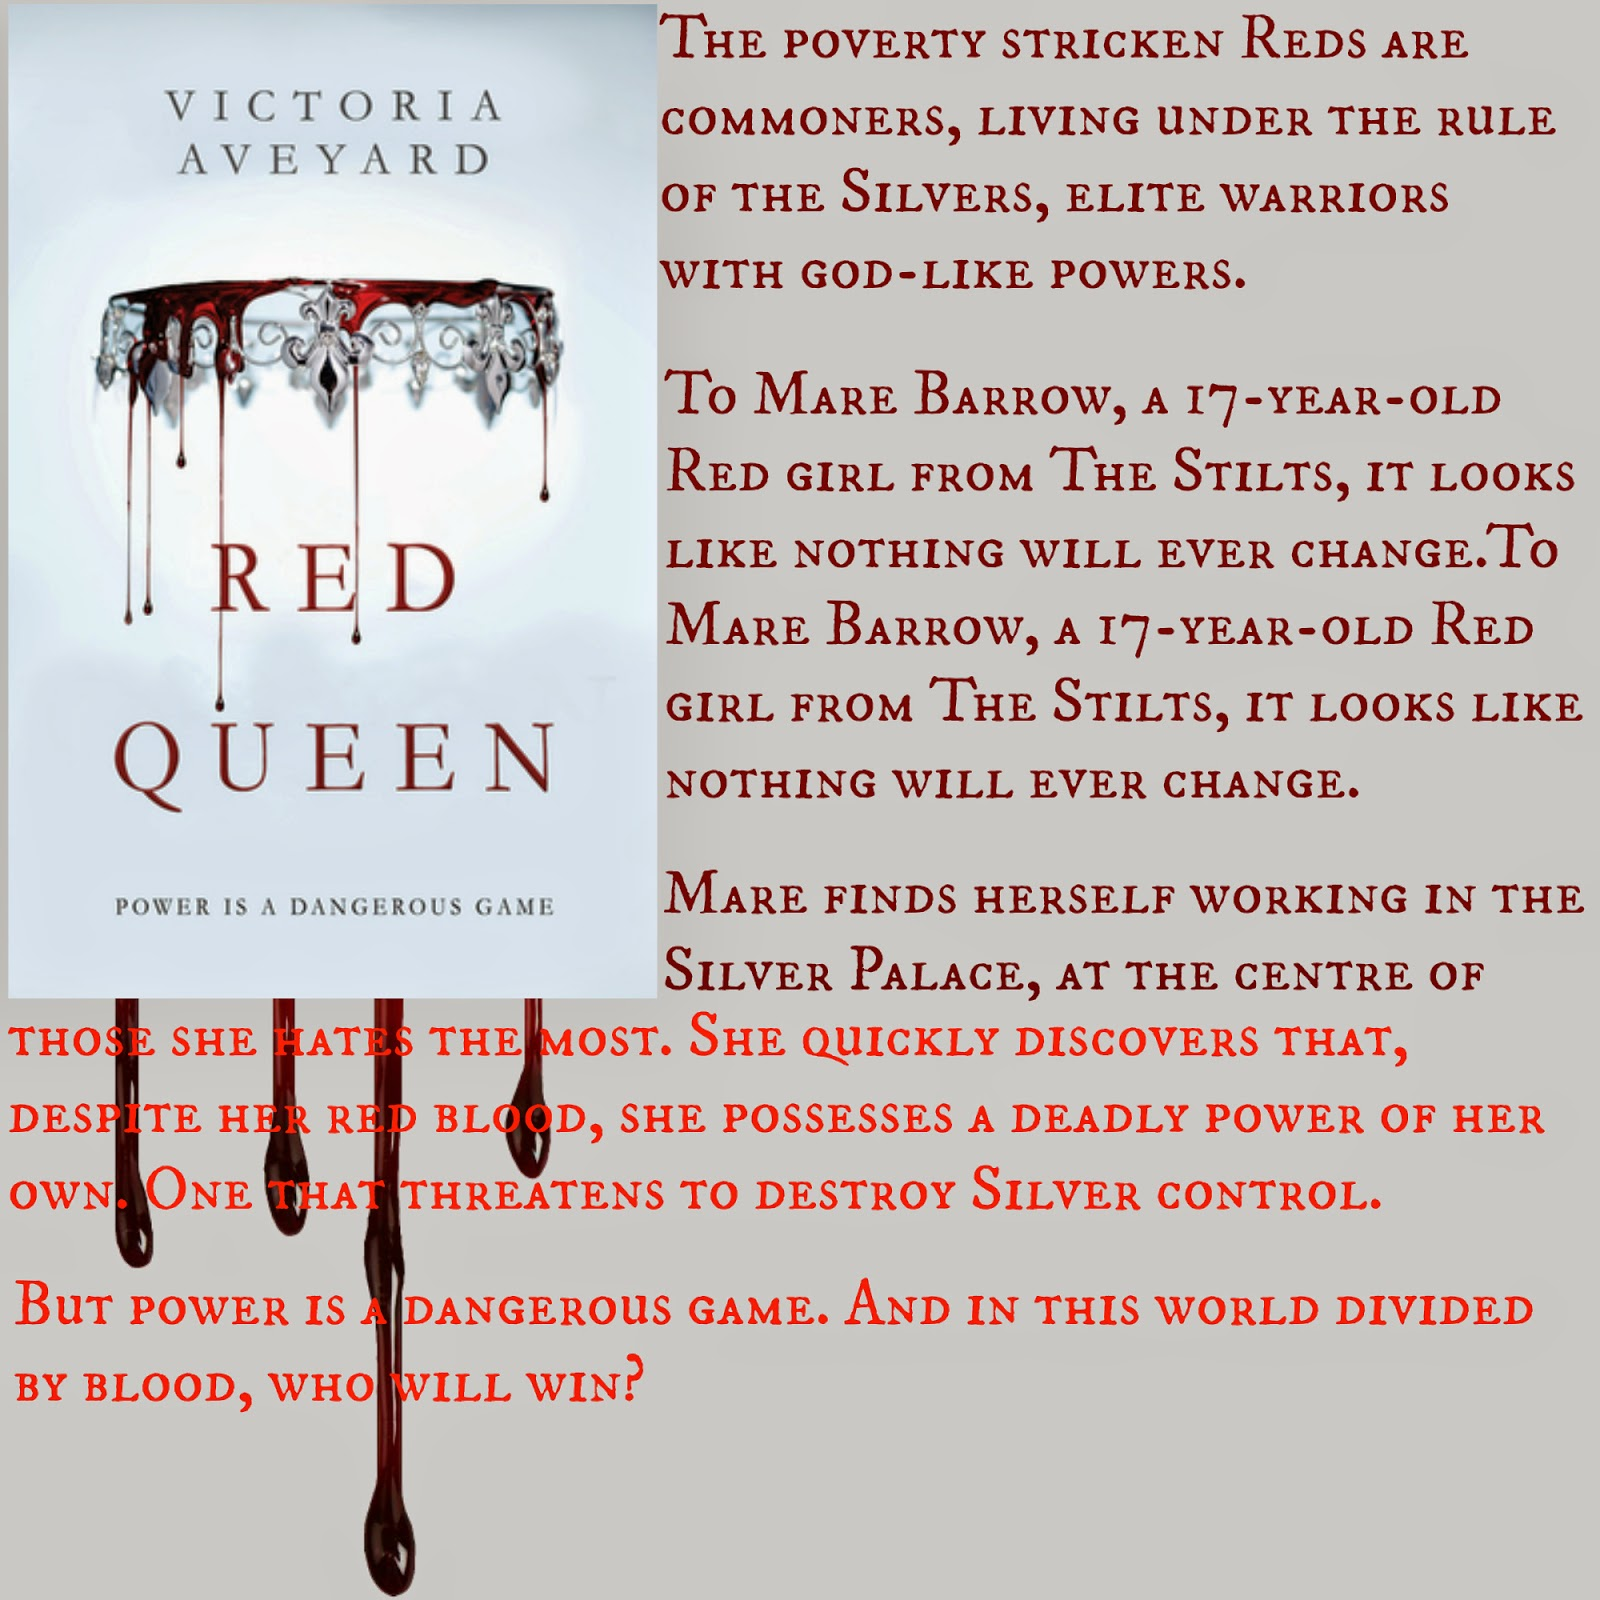 The red queen synopsis